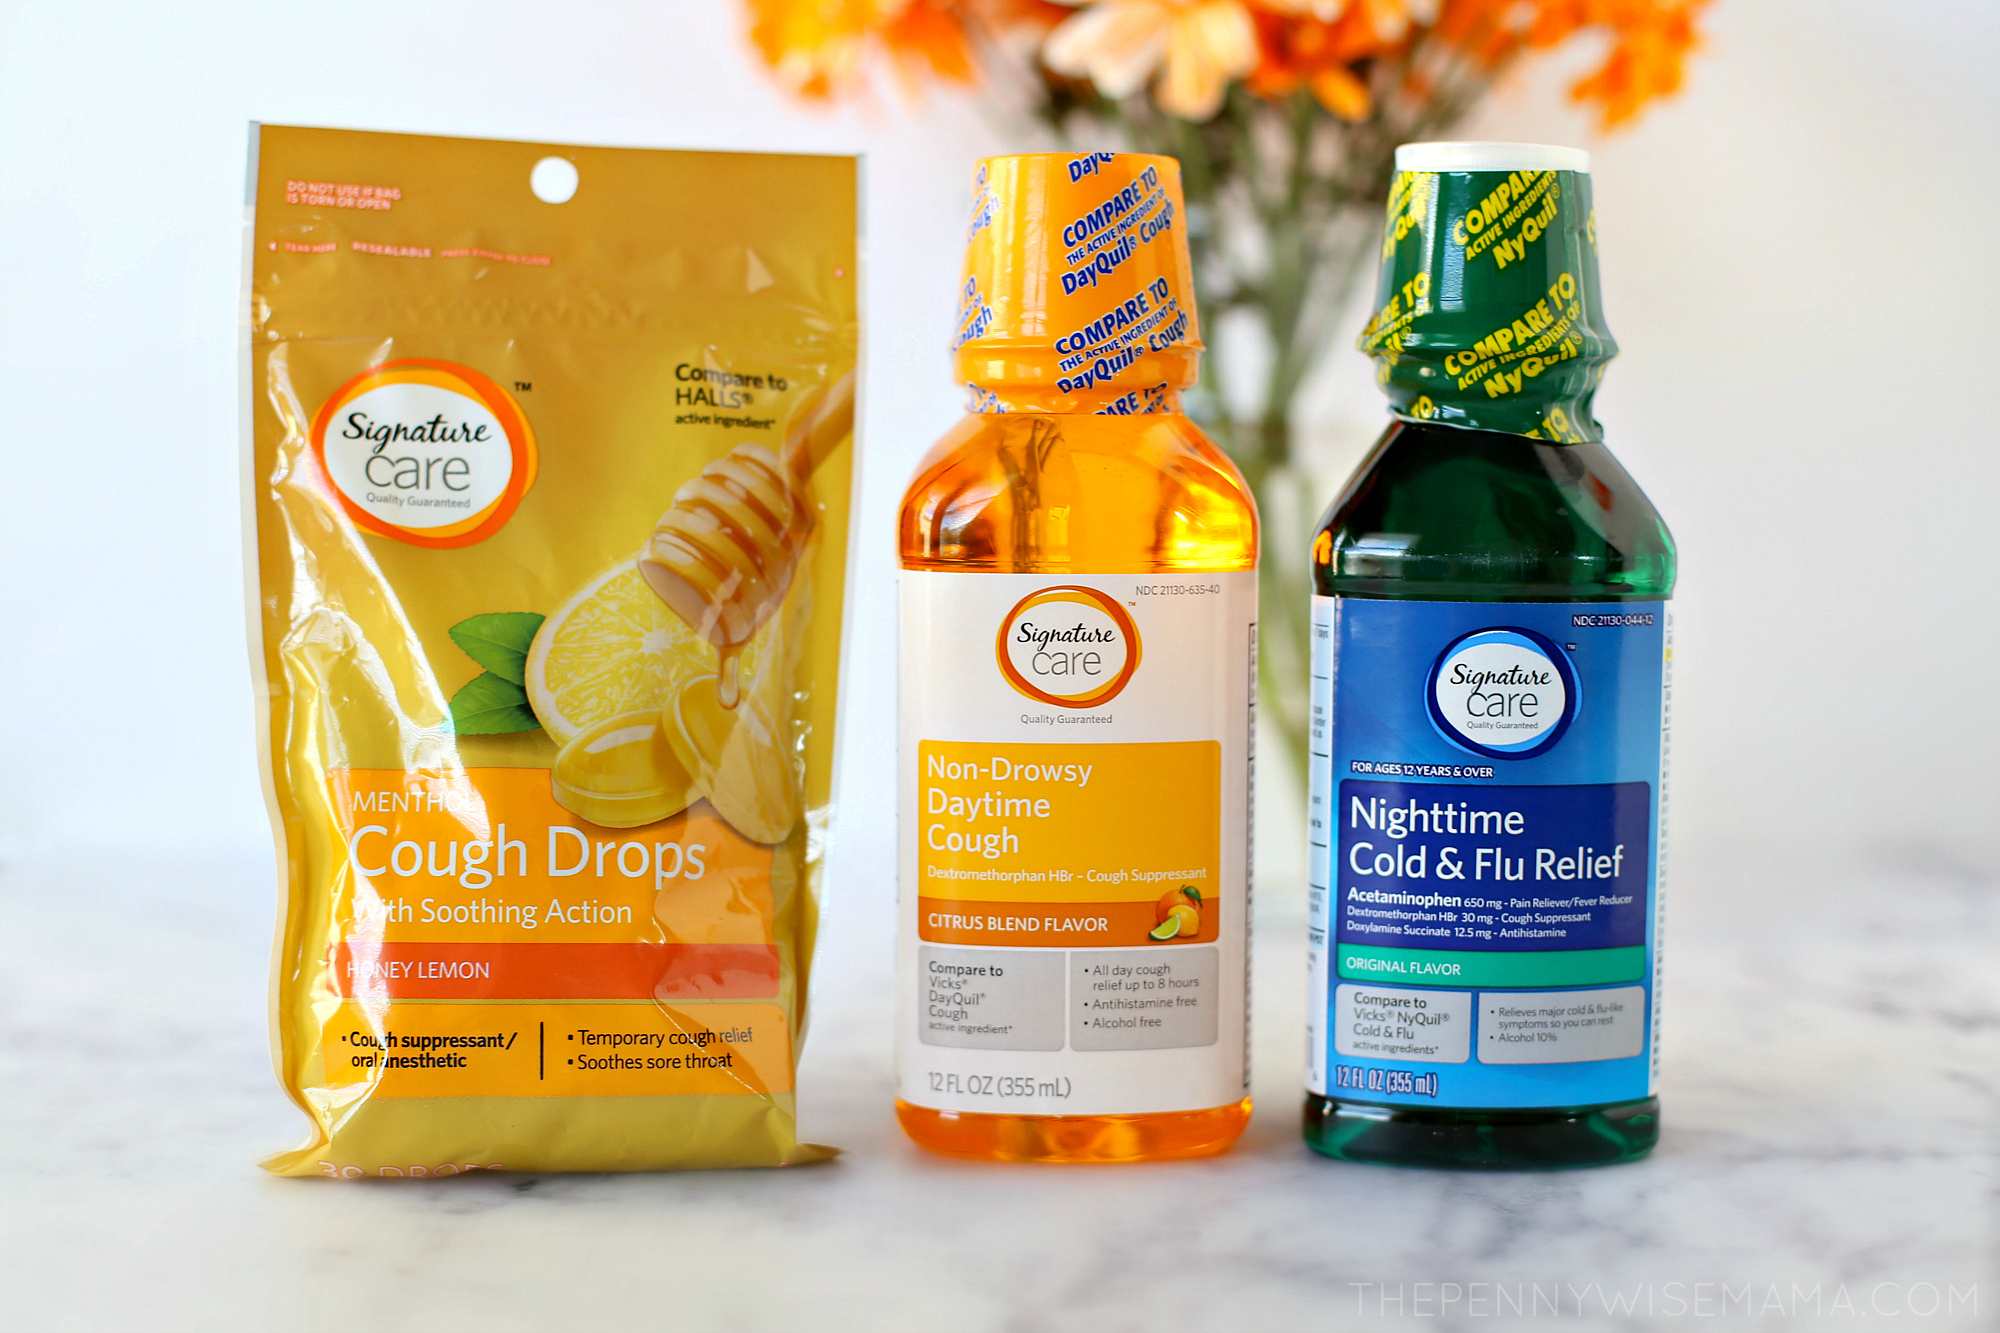 Signature Care Cough & Cold Products from Safeway